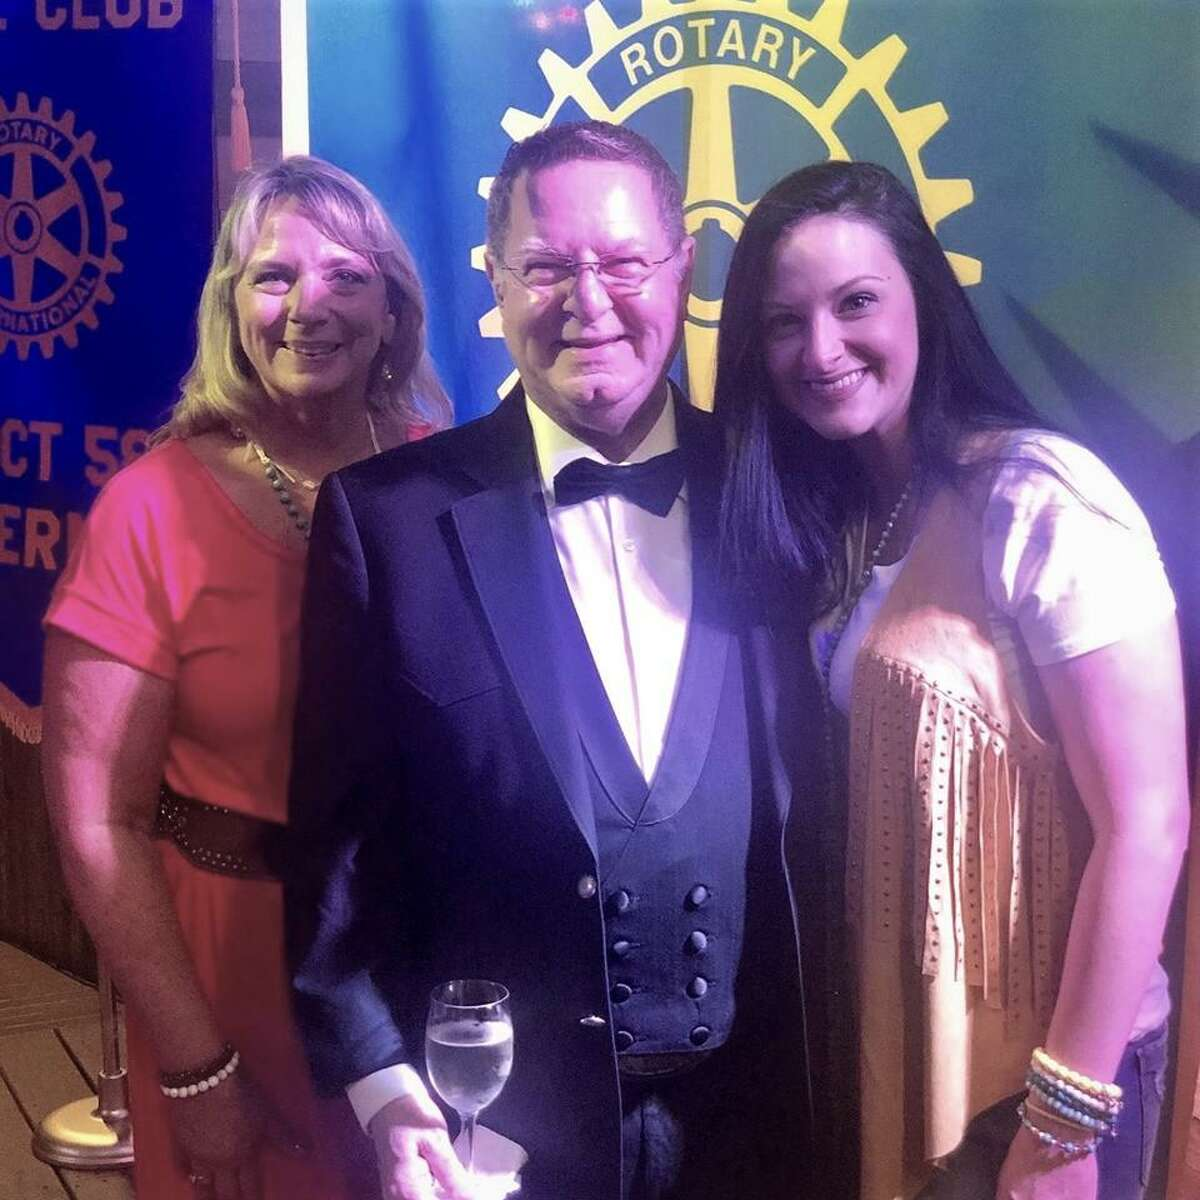 Gary Gillen with wife Janice and daughter Jen. Gary Gillen was installed June 13 as the 2019-20 Governor of District 5890 of Rotary International.